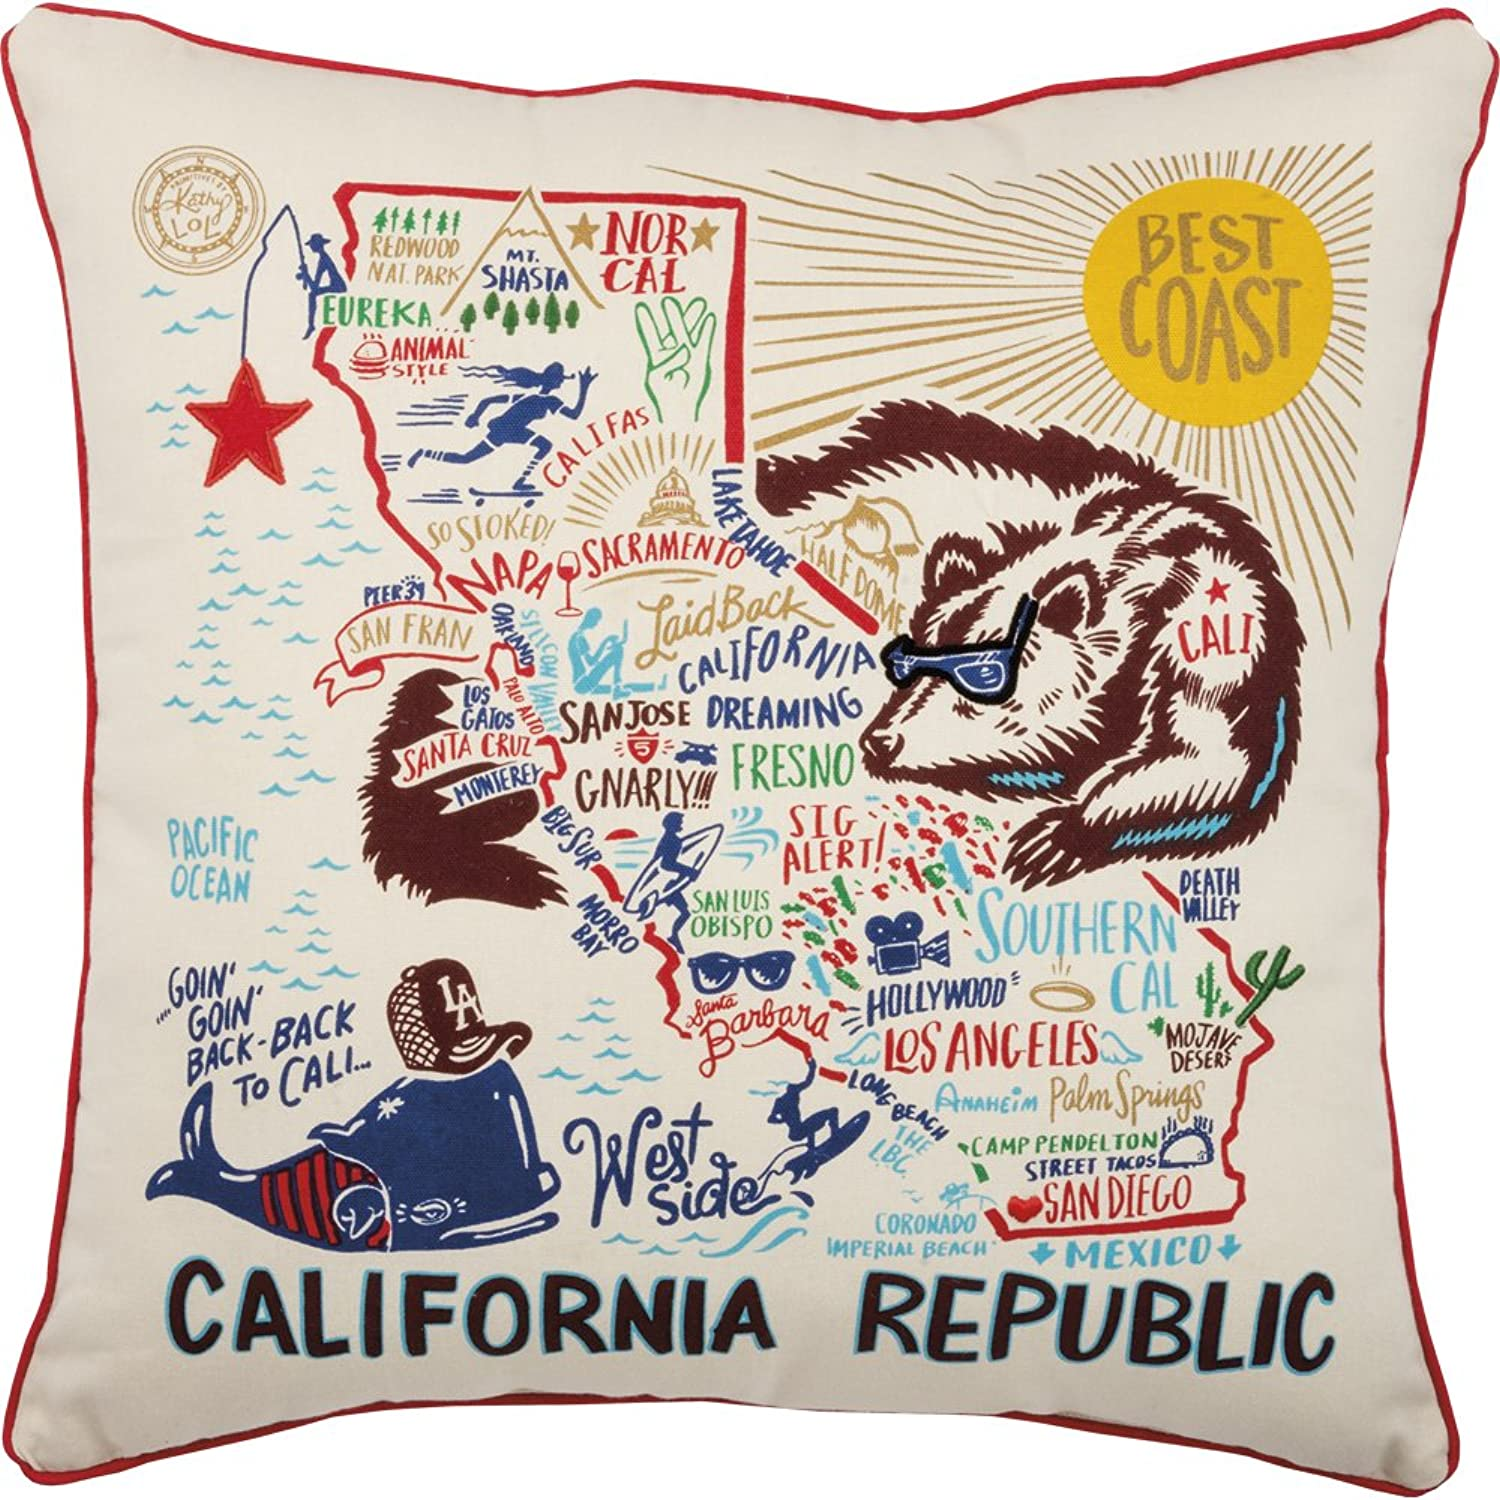 Primitives by Kathy Home State California Republic Decorative Throw Pillow, 20-Inch Square,